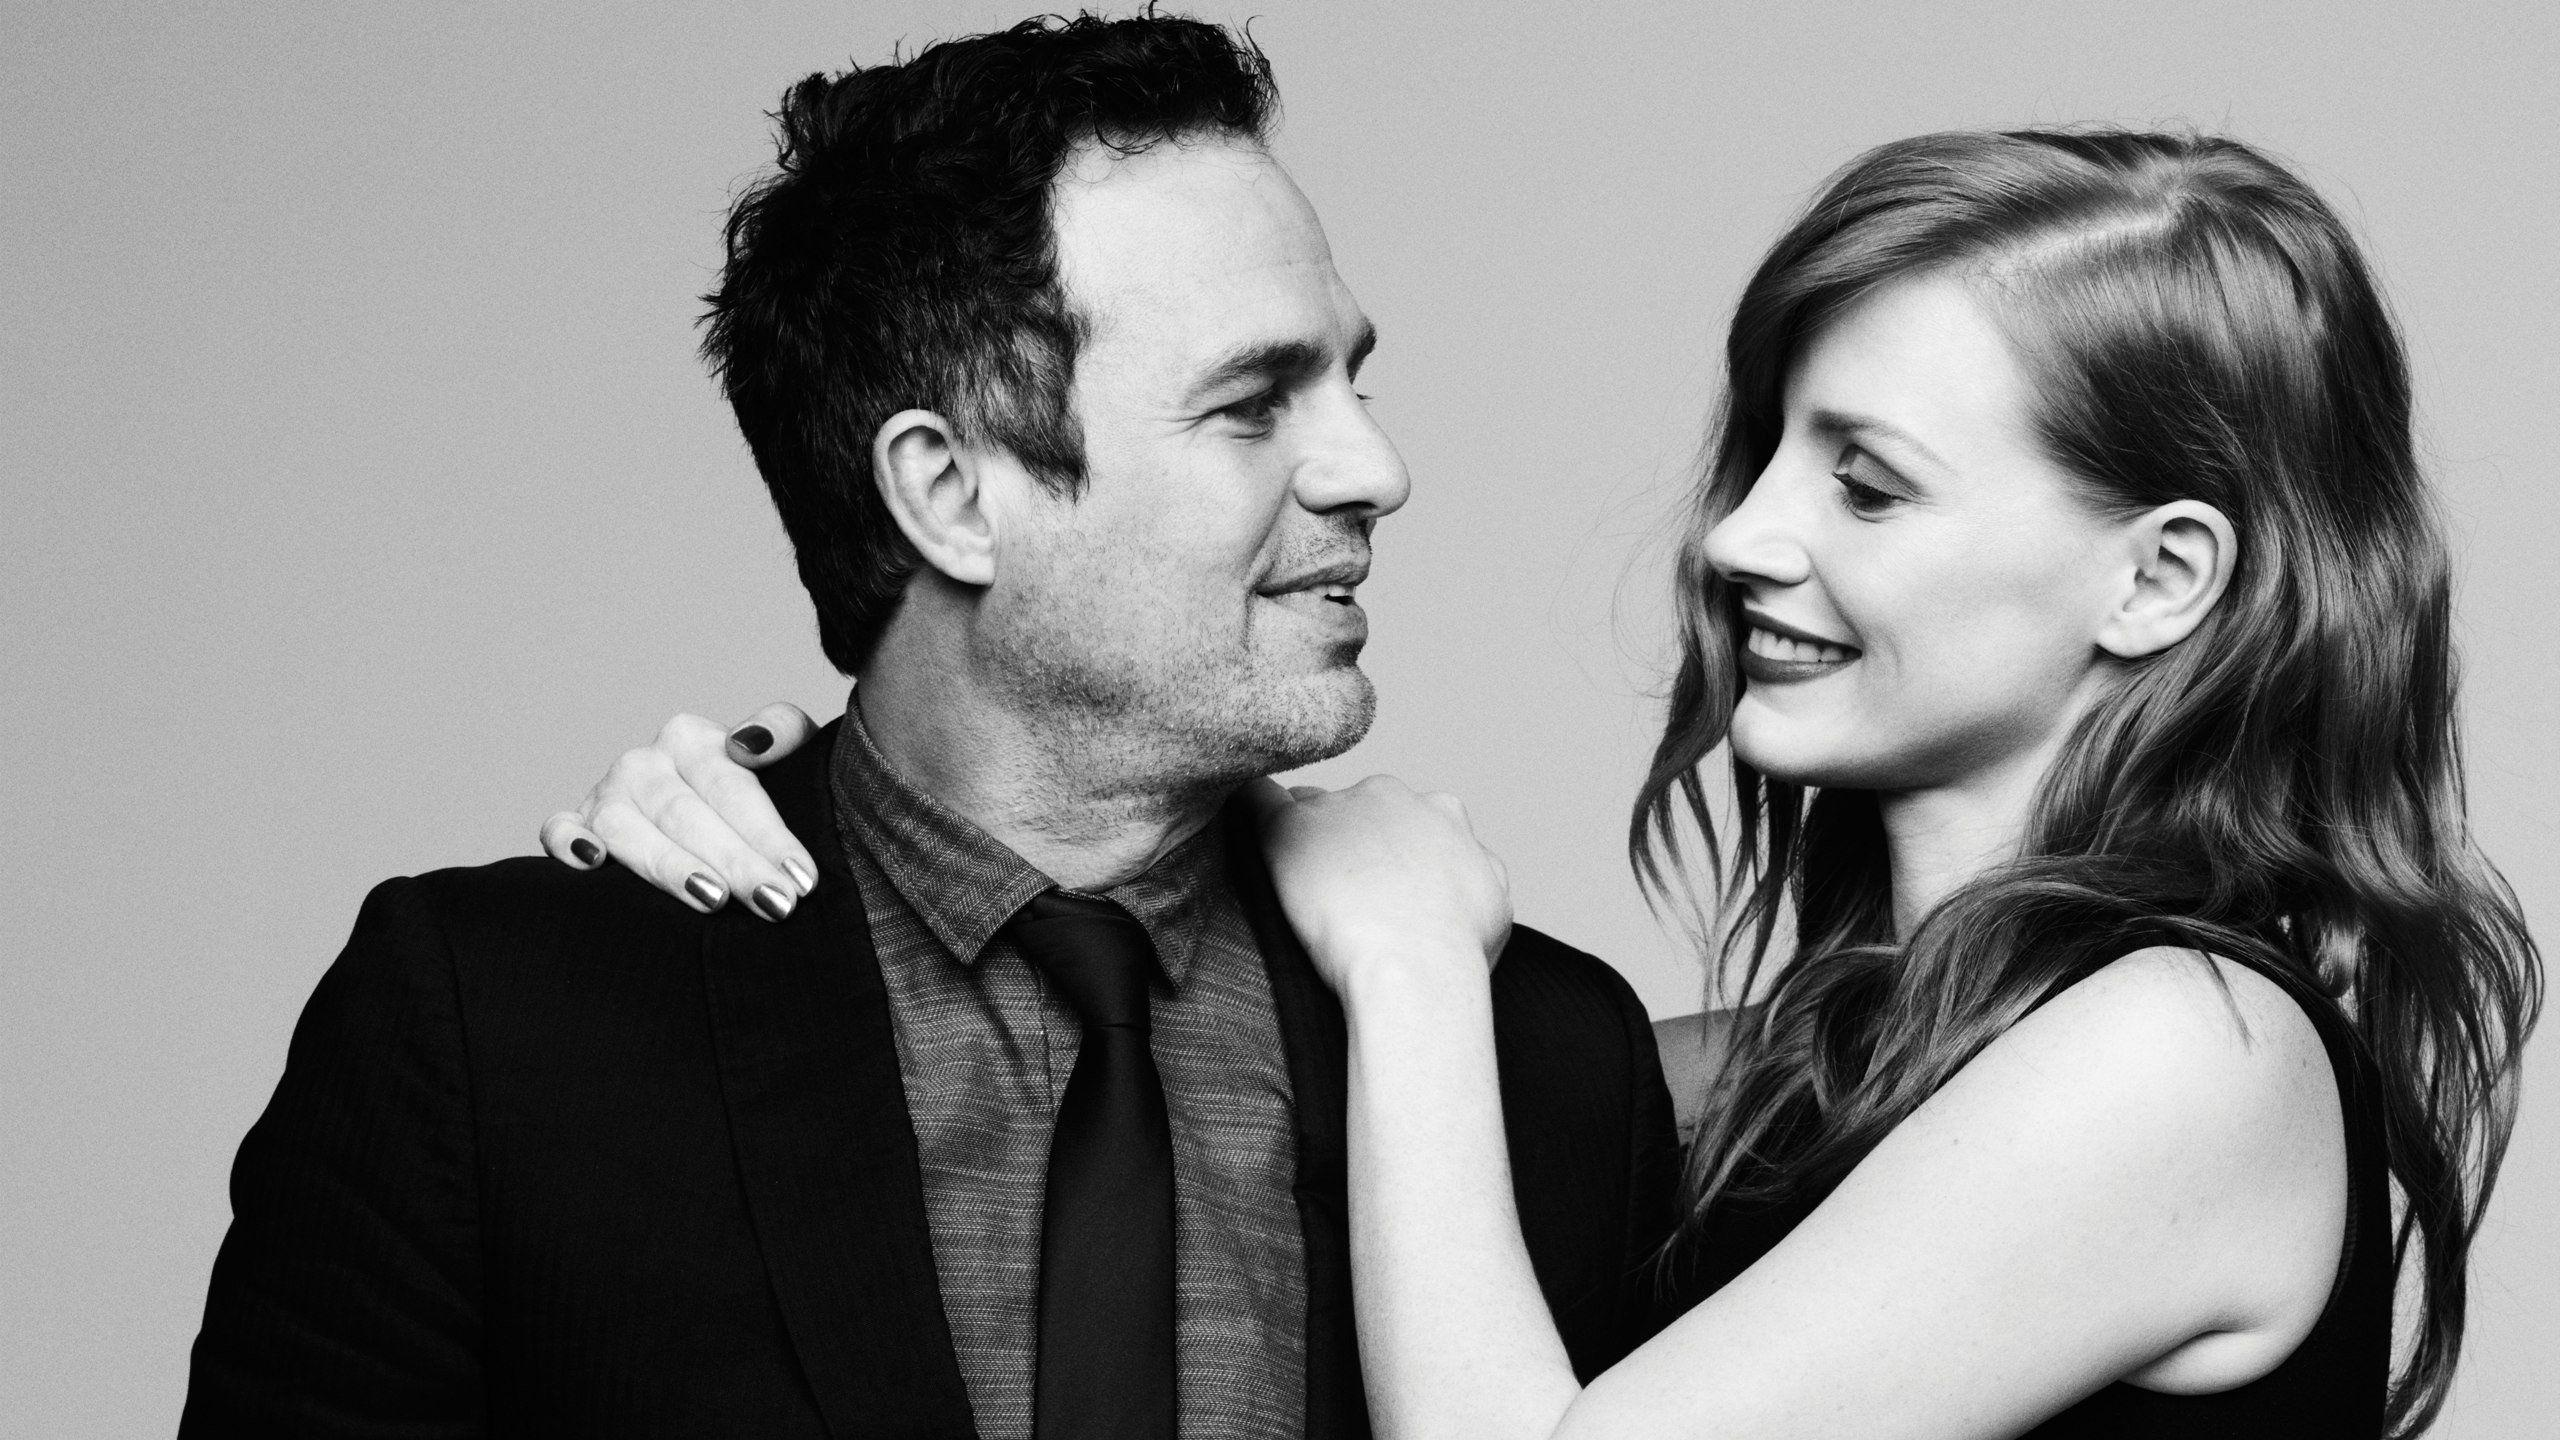 Jessica Chastain, Women, Redhead, Actress, Mark Ruffalo, Men, Actor